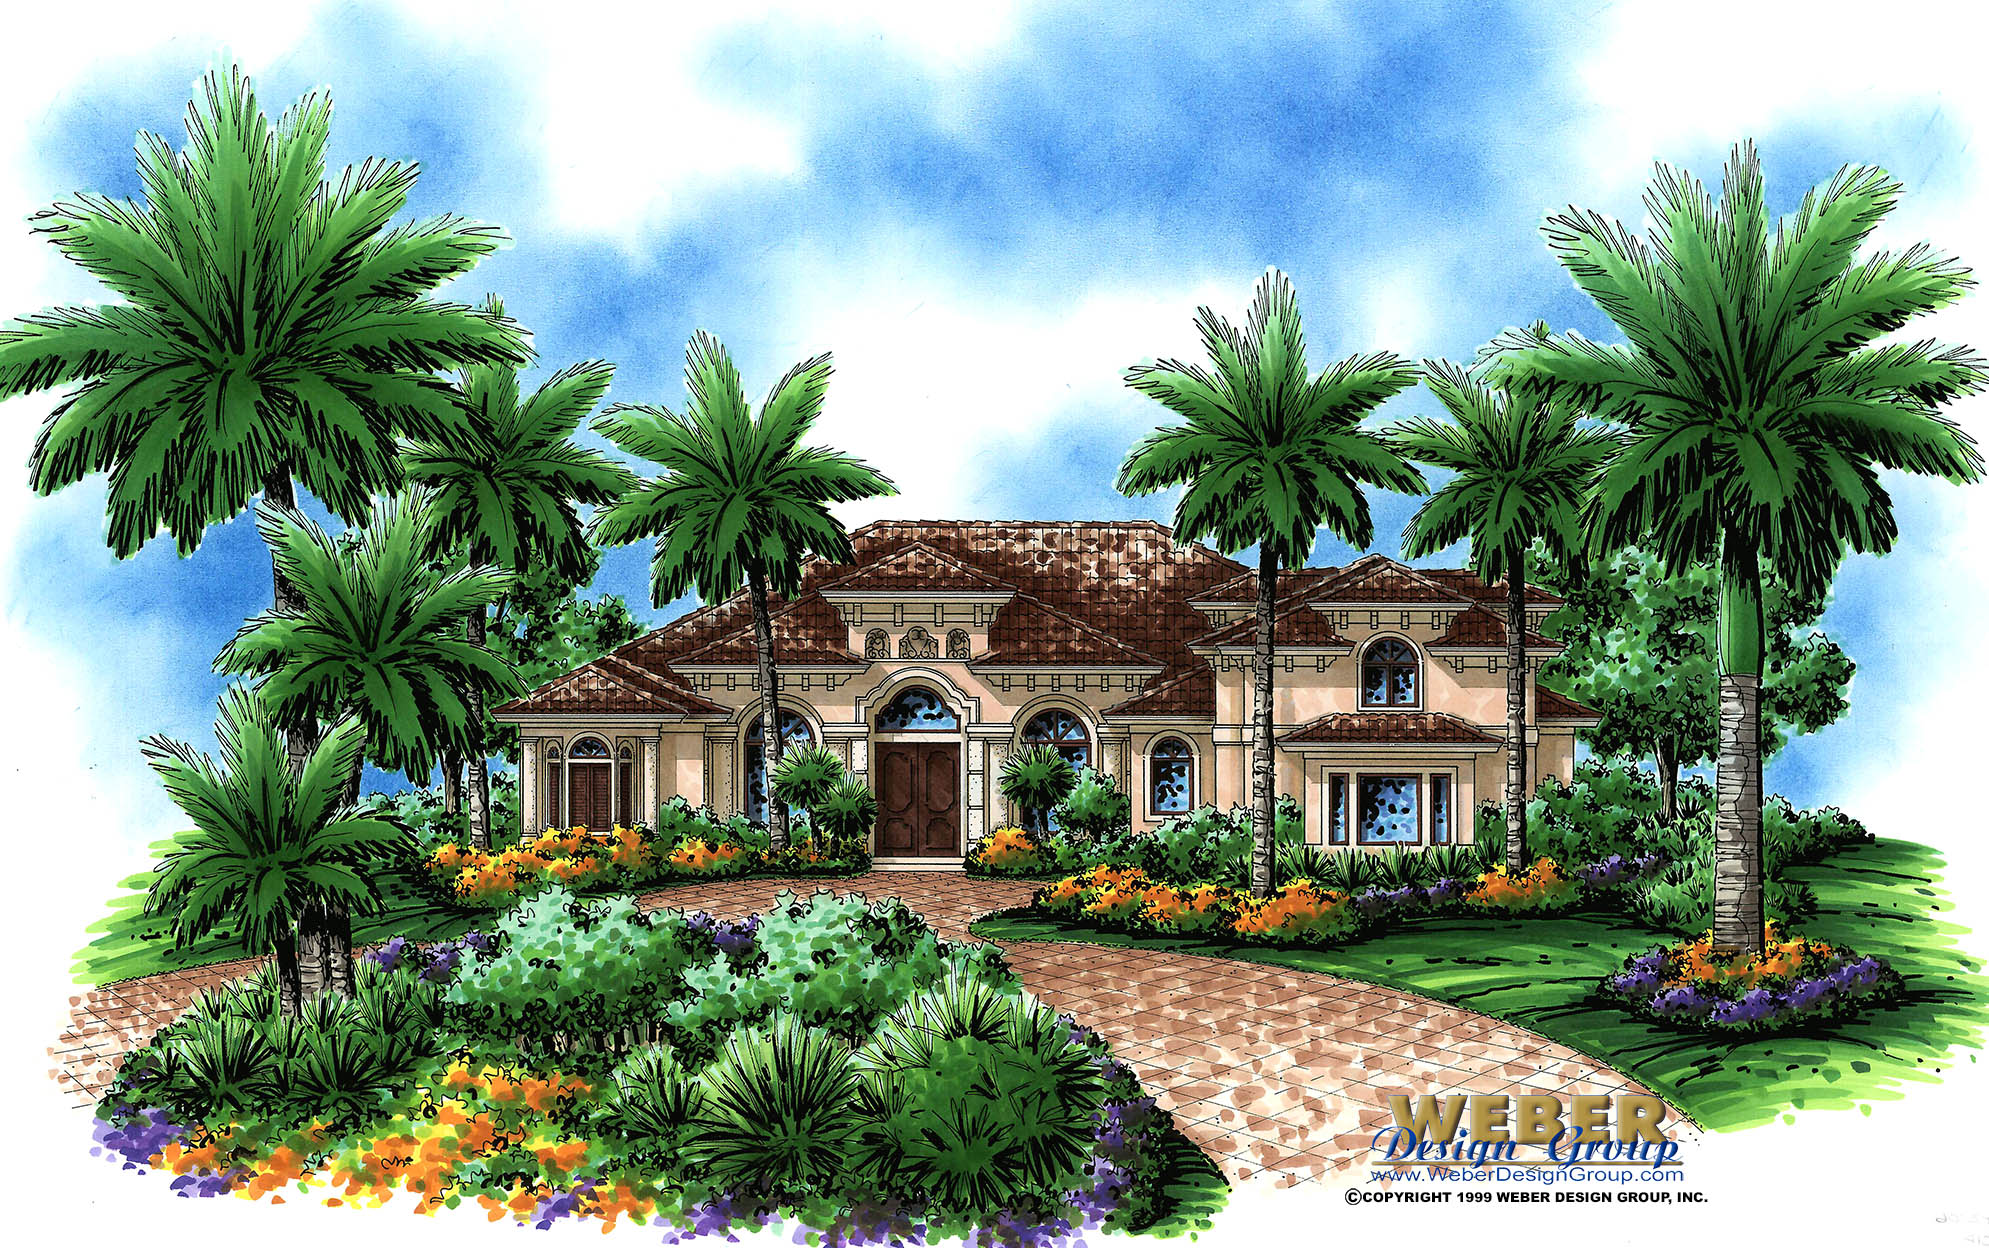 Mediterranean House Plan: Unique 2 Story Tuscan Home Floor Plan